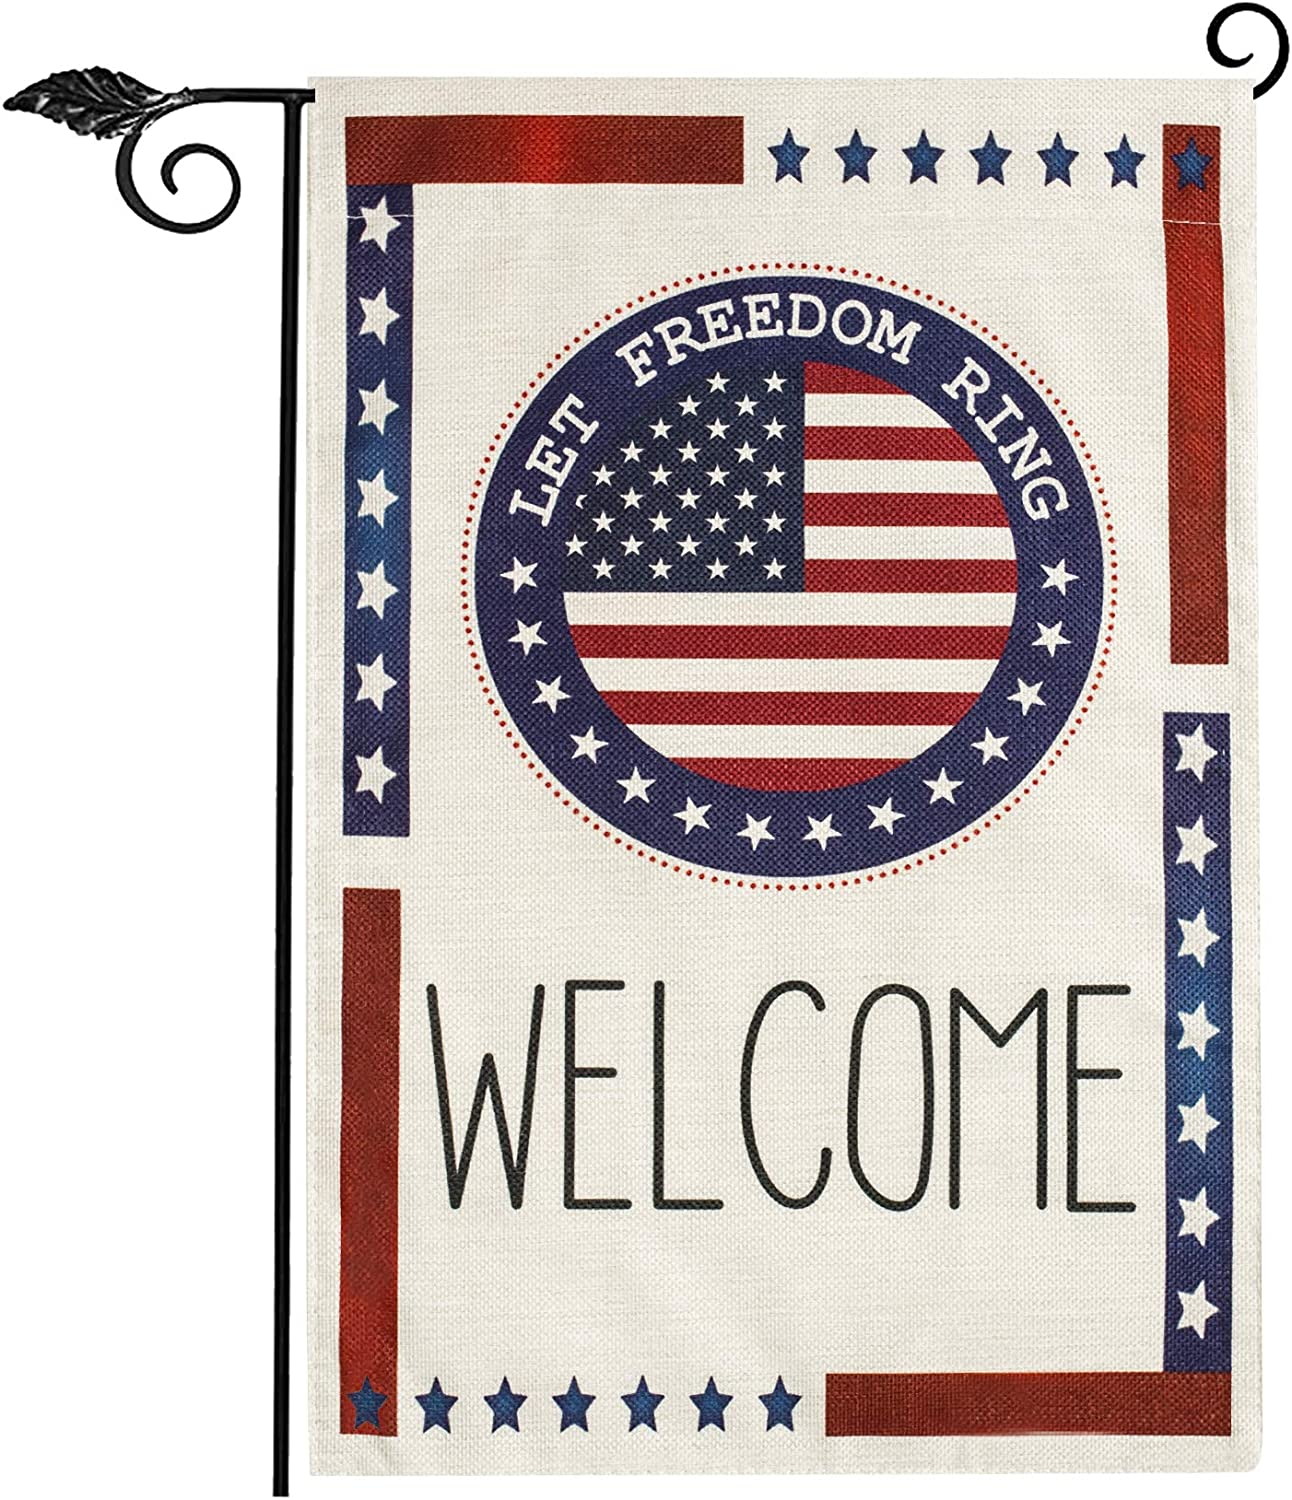 Unves Patriotic Garden Flag 12.5 X 18, Stars and Stripes 4th of July Flags, American USA Garden Flag Vertical Double Sided Burlap, Independence Day Welcome Garden Flag for Yard House Seasonal Decor